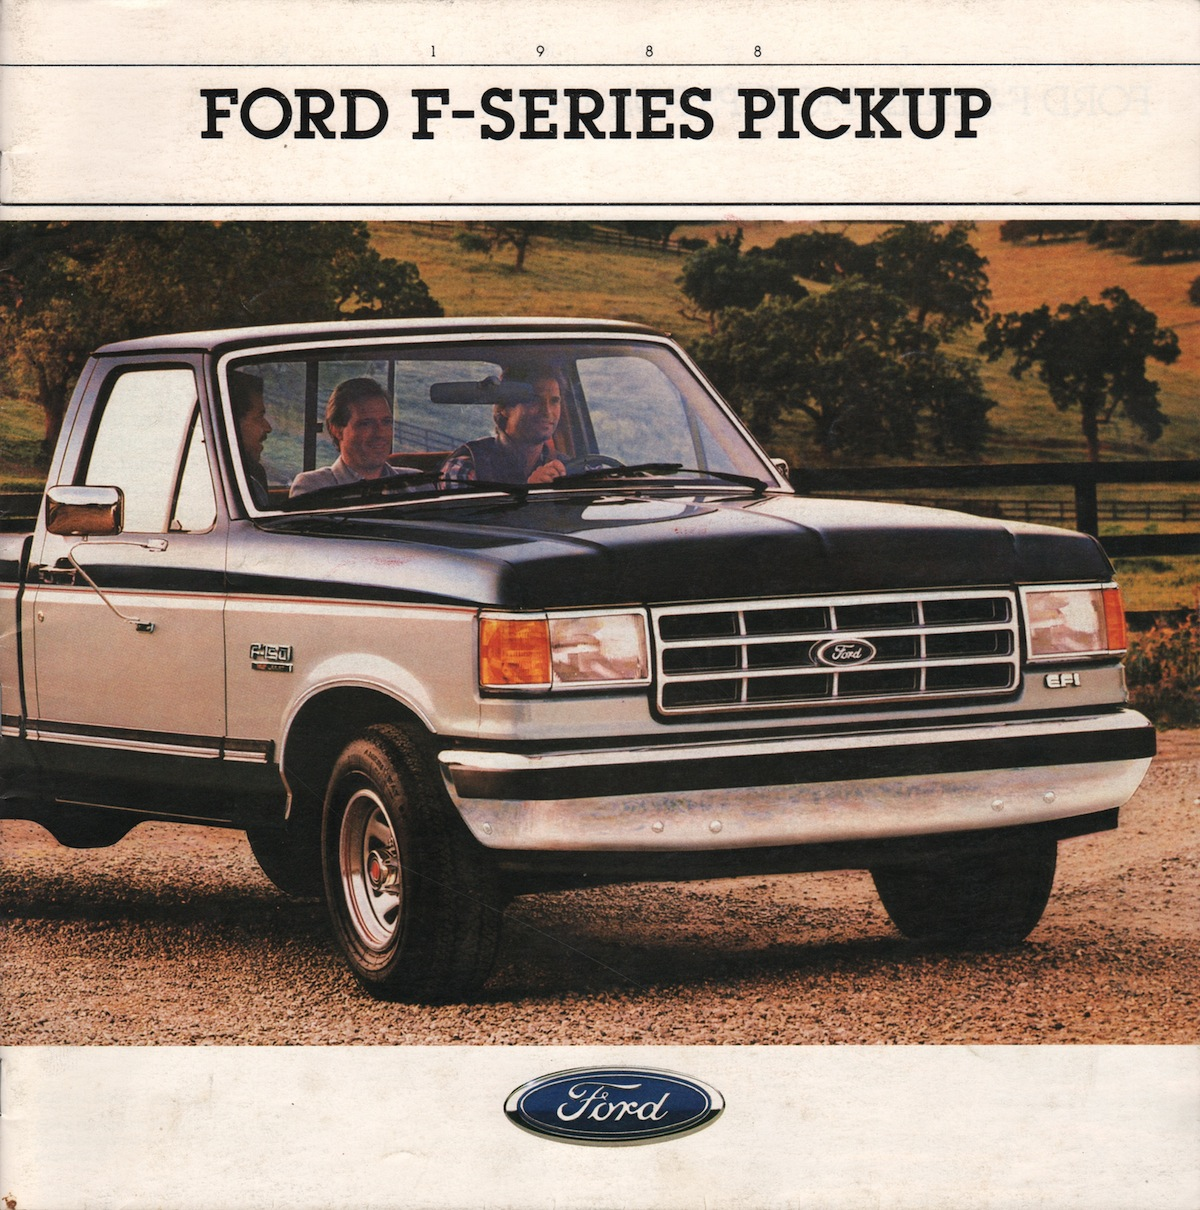 1988 recreation vehicles ford truck sales brochure